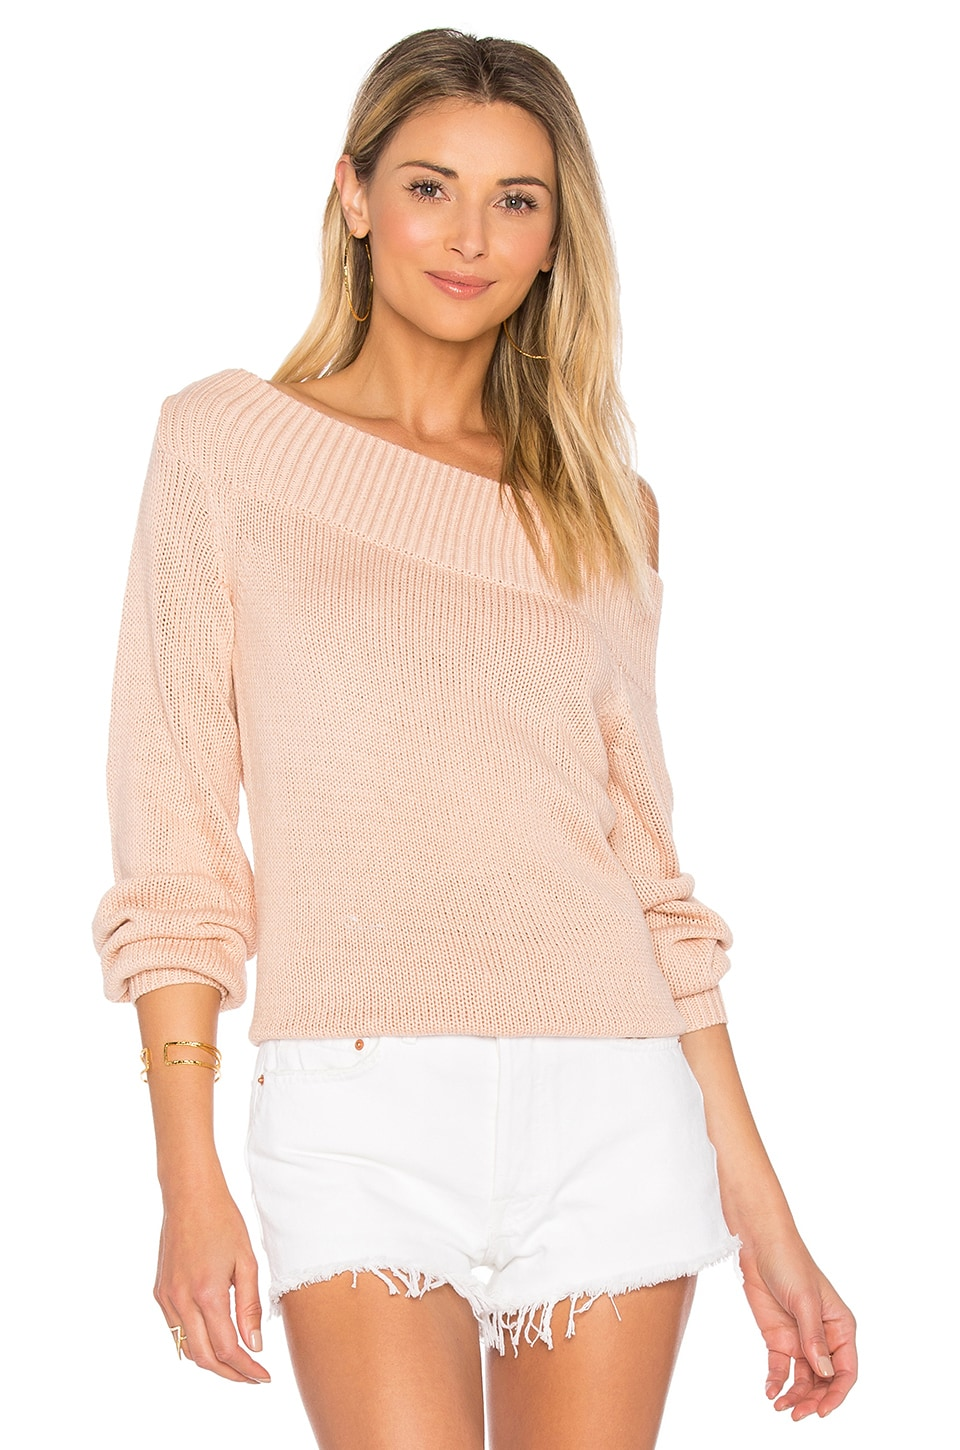 Lovers + Friends x REVOLVE Lucas Sweater in Ballet